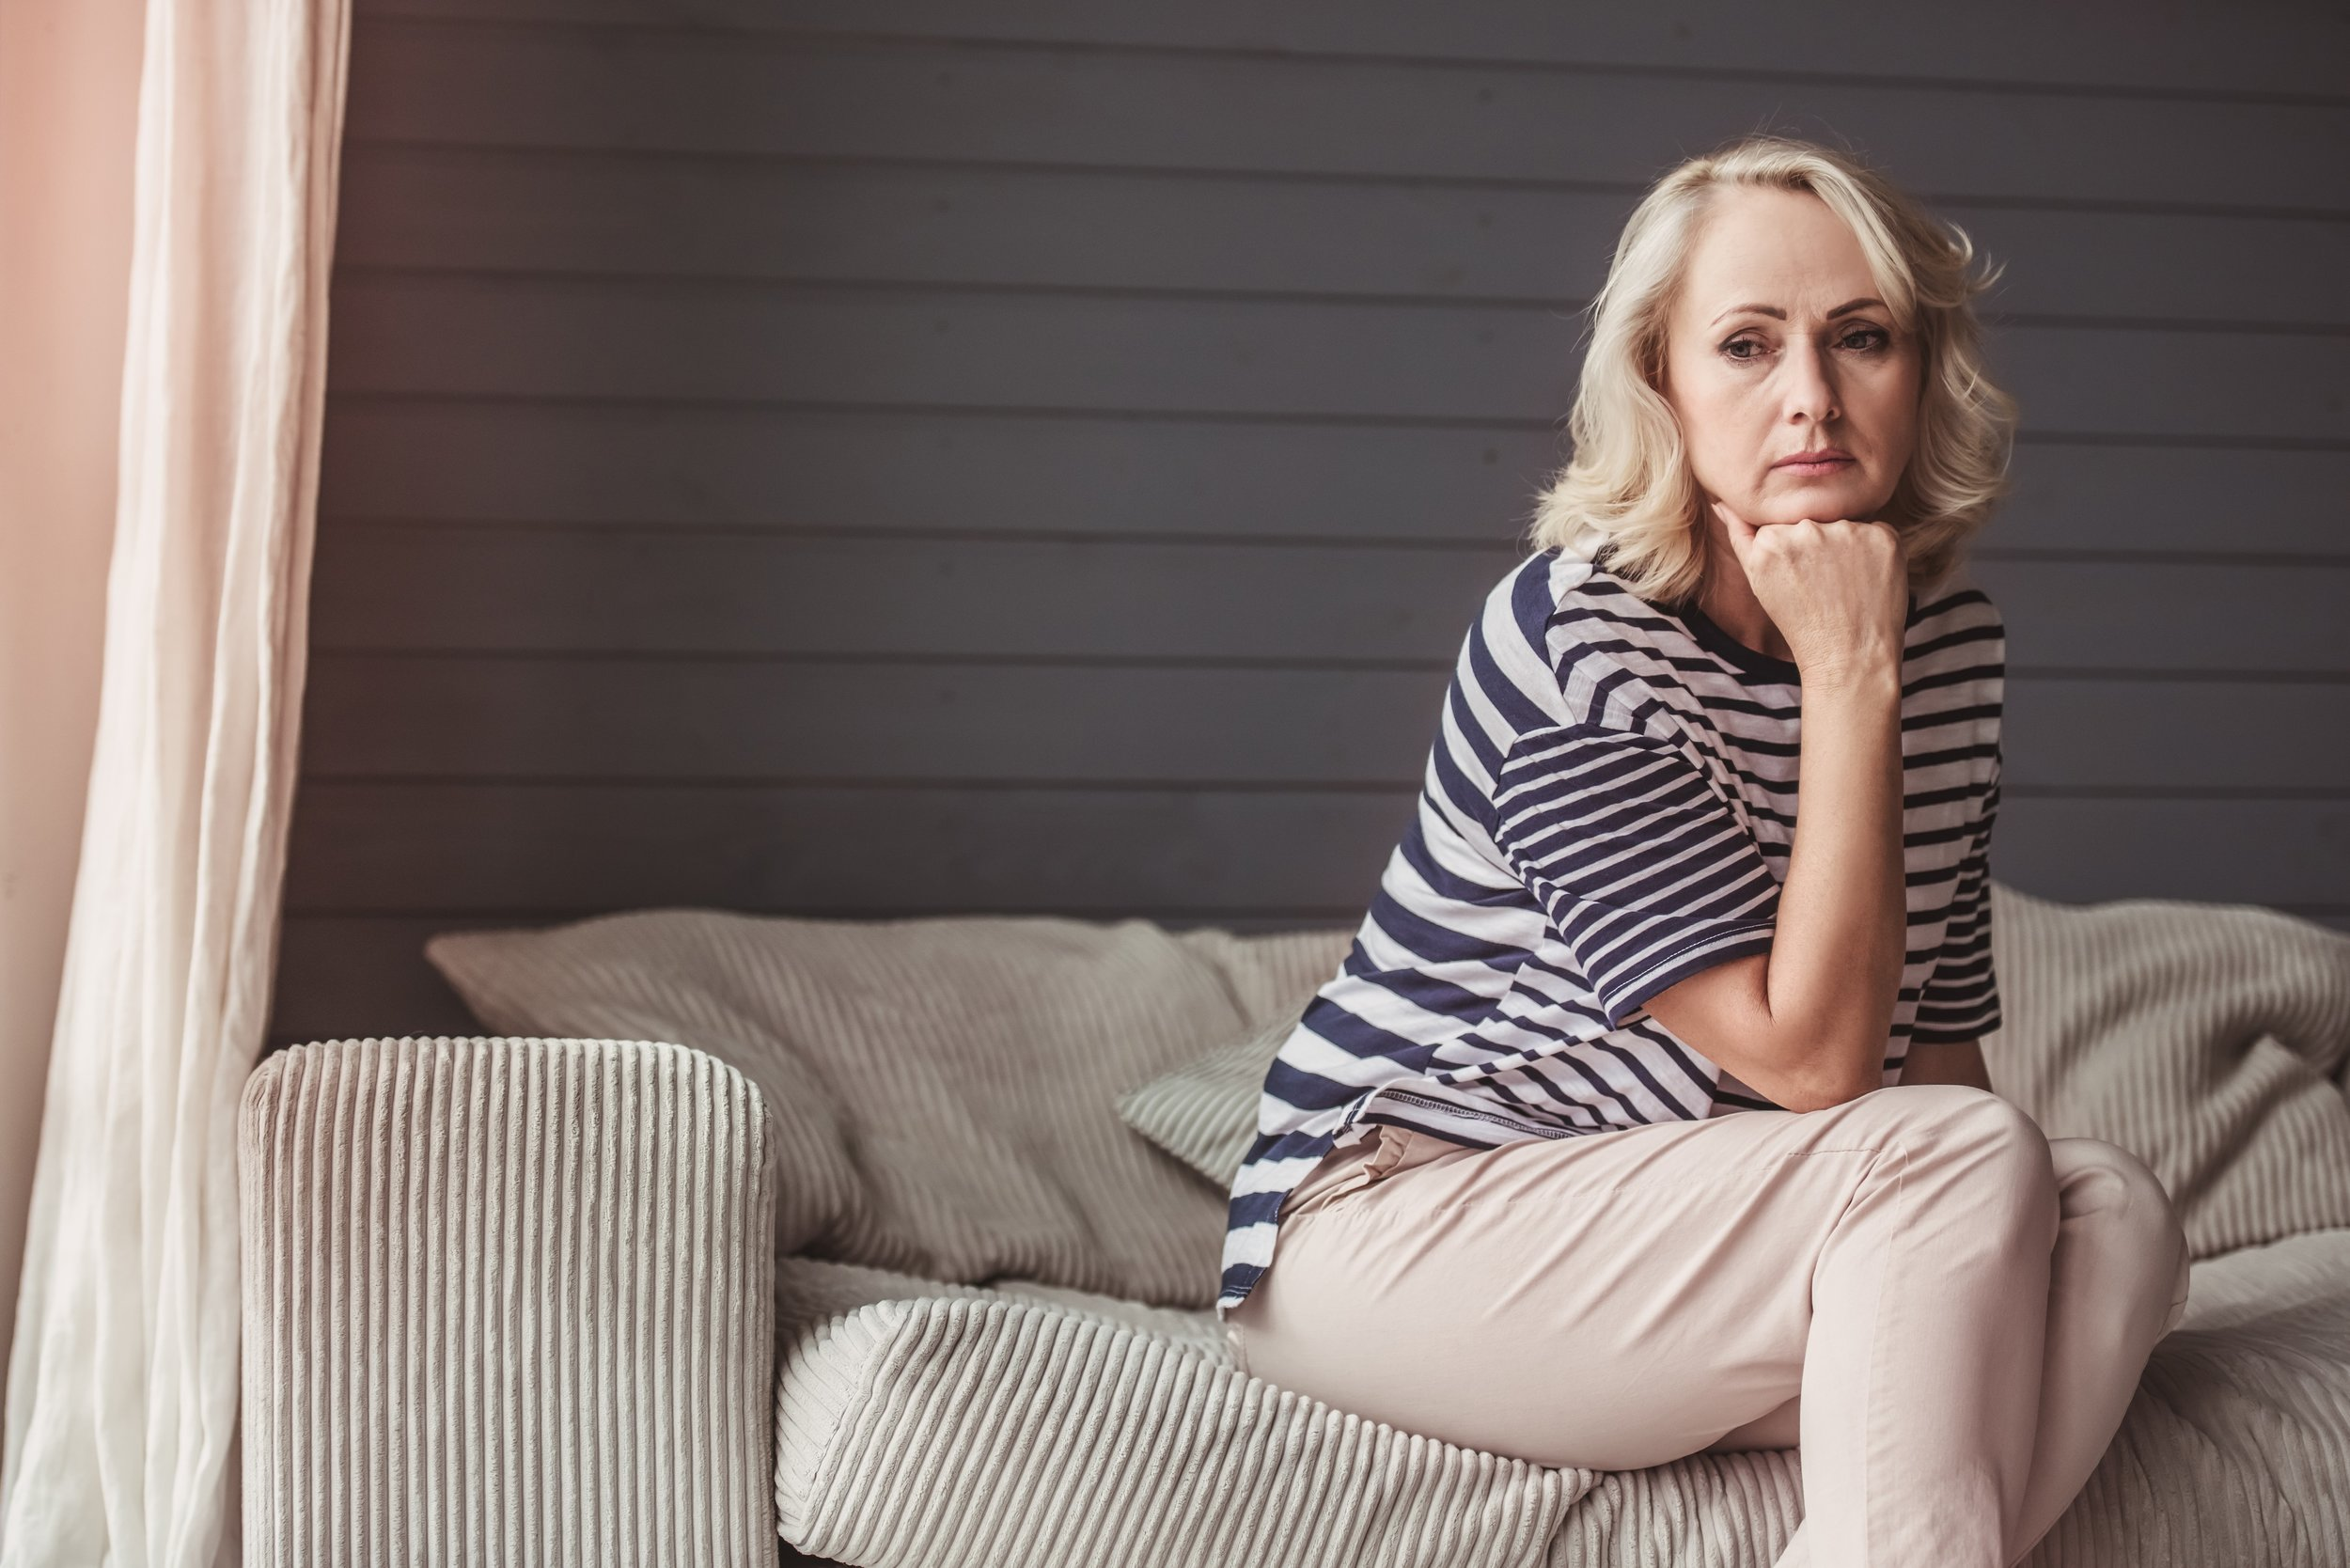 Senior woman sits on couch staring out window.